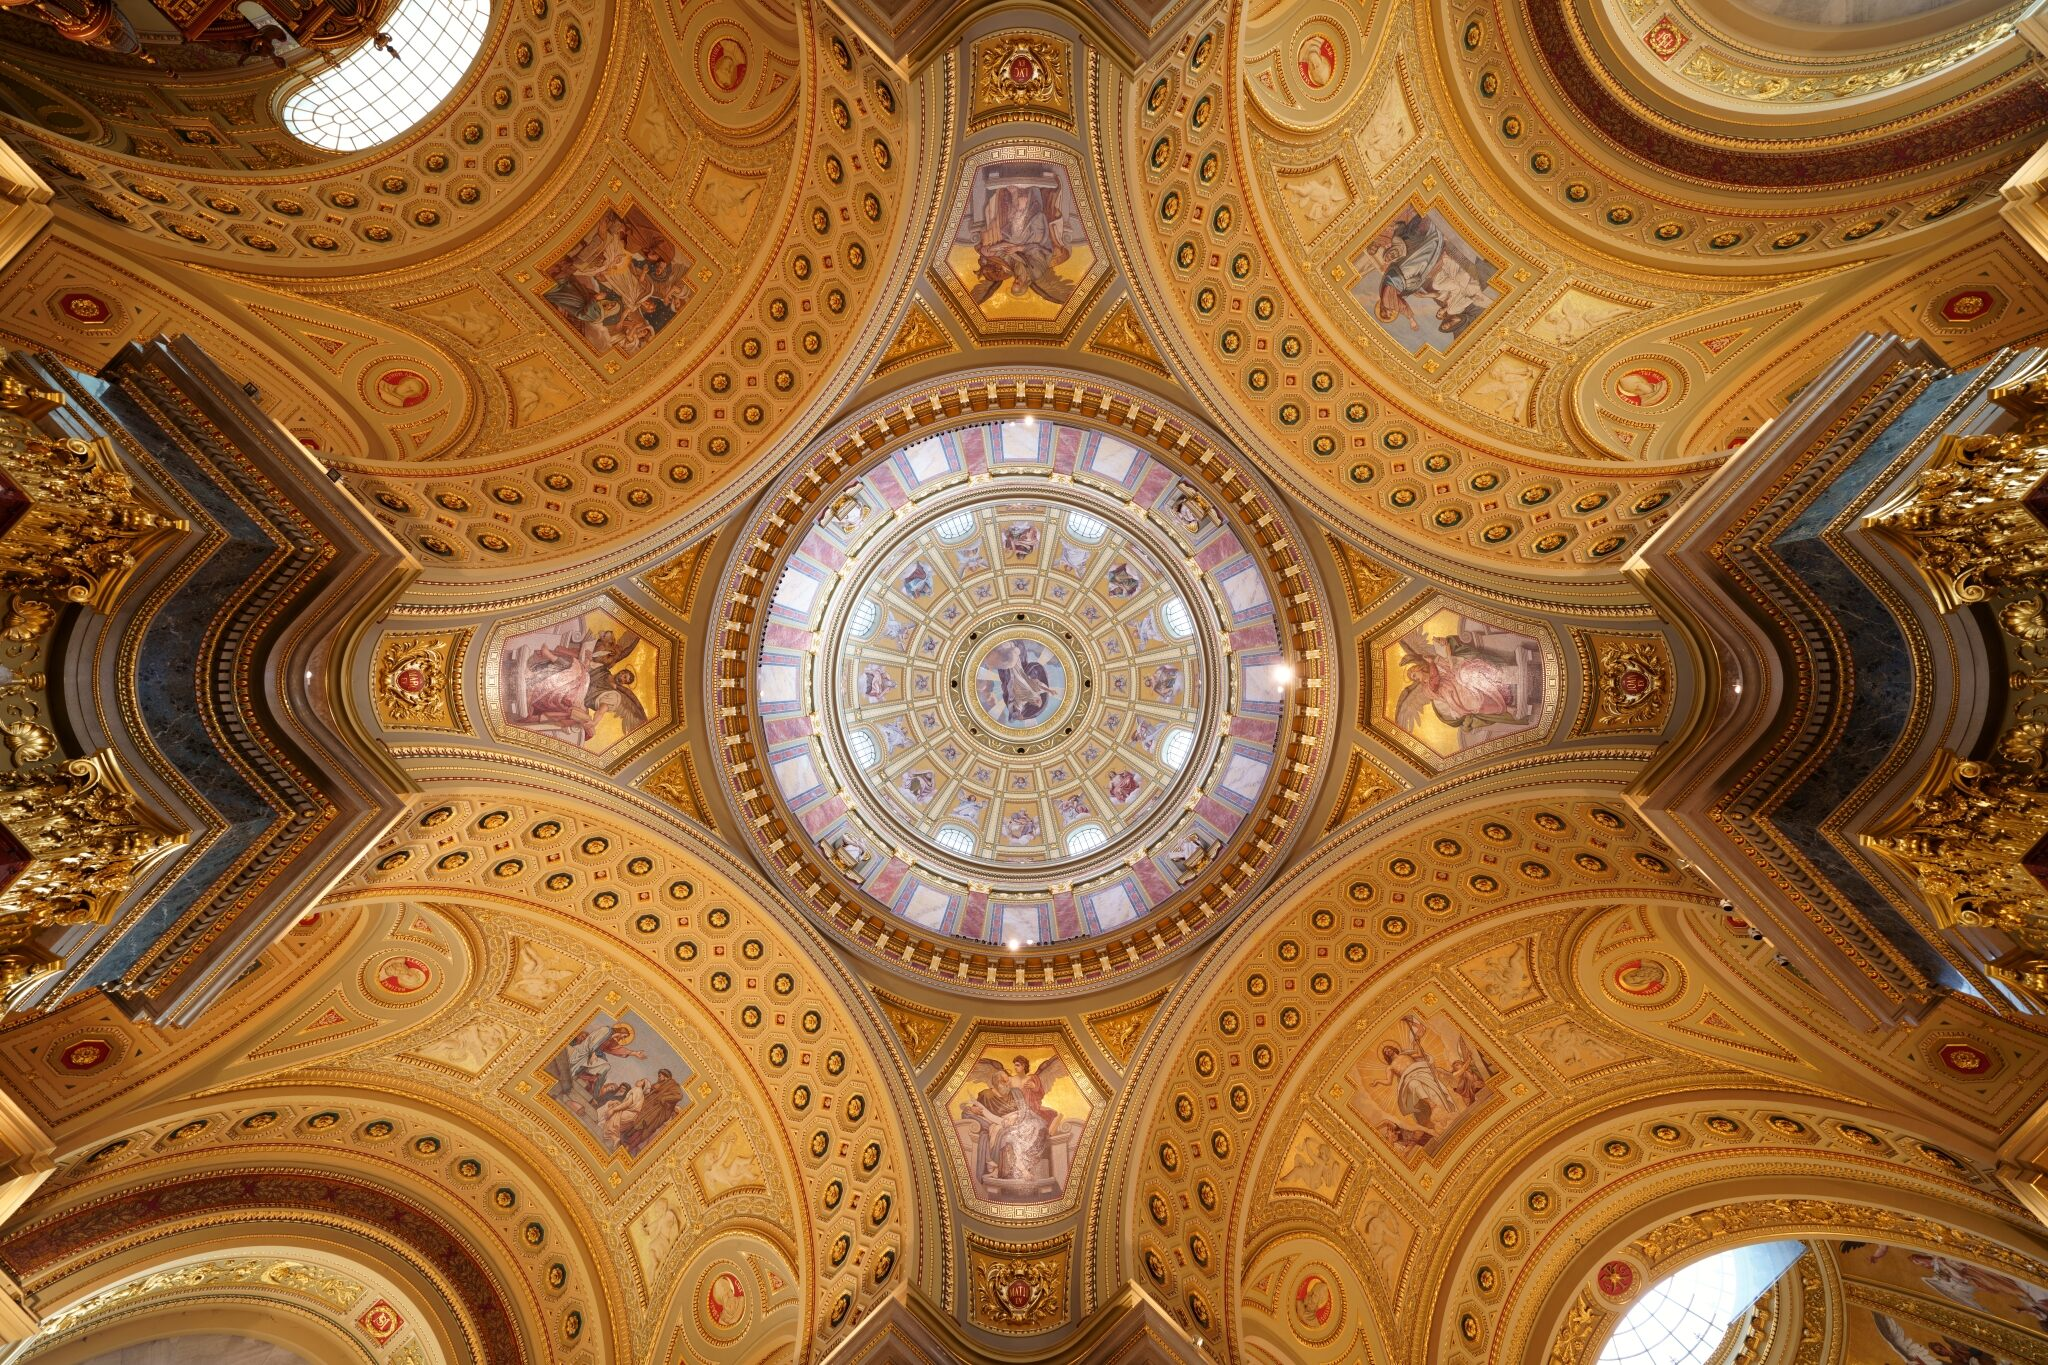 Ornate dome and vaulted ceilings of Stephen's Basilica in Budapest, photographed with the Sony a7R IV camera